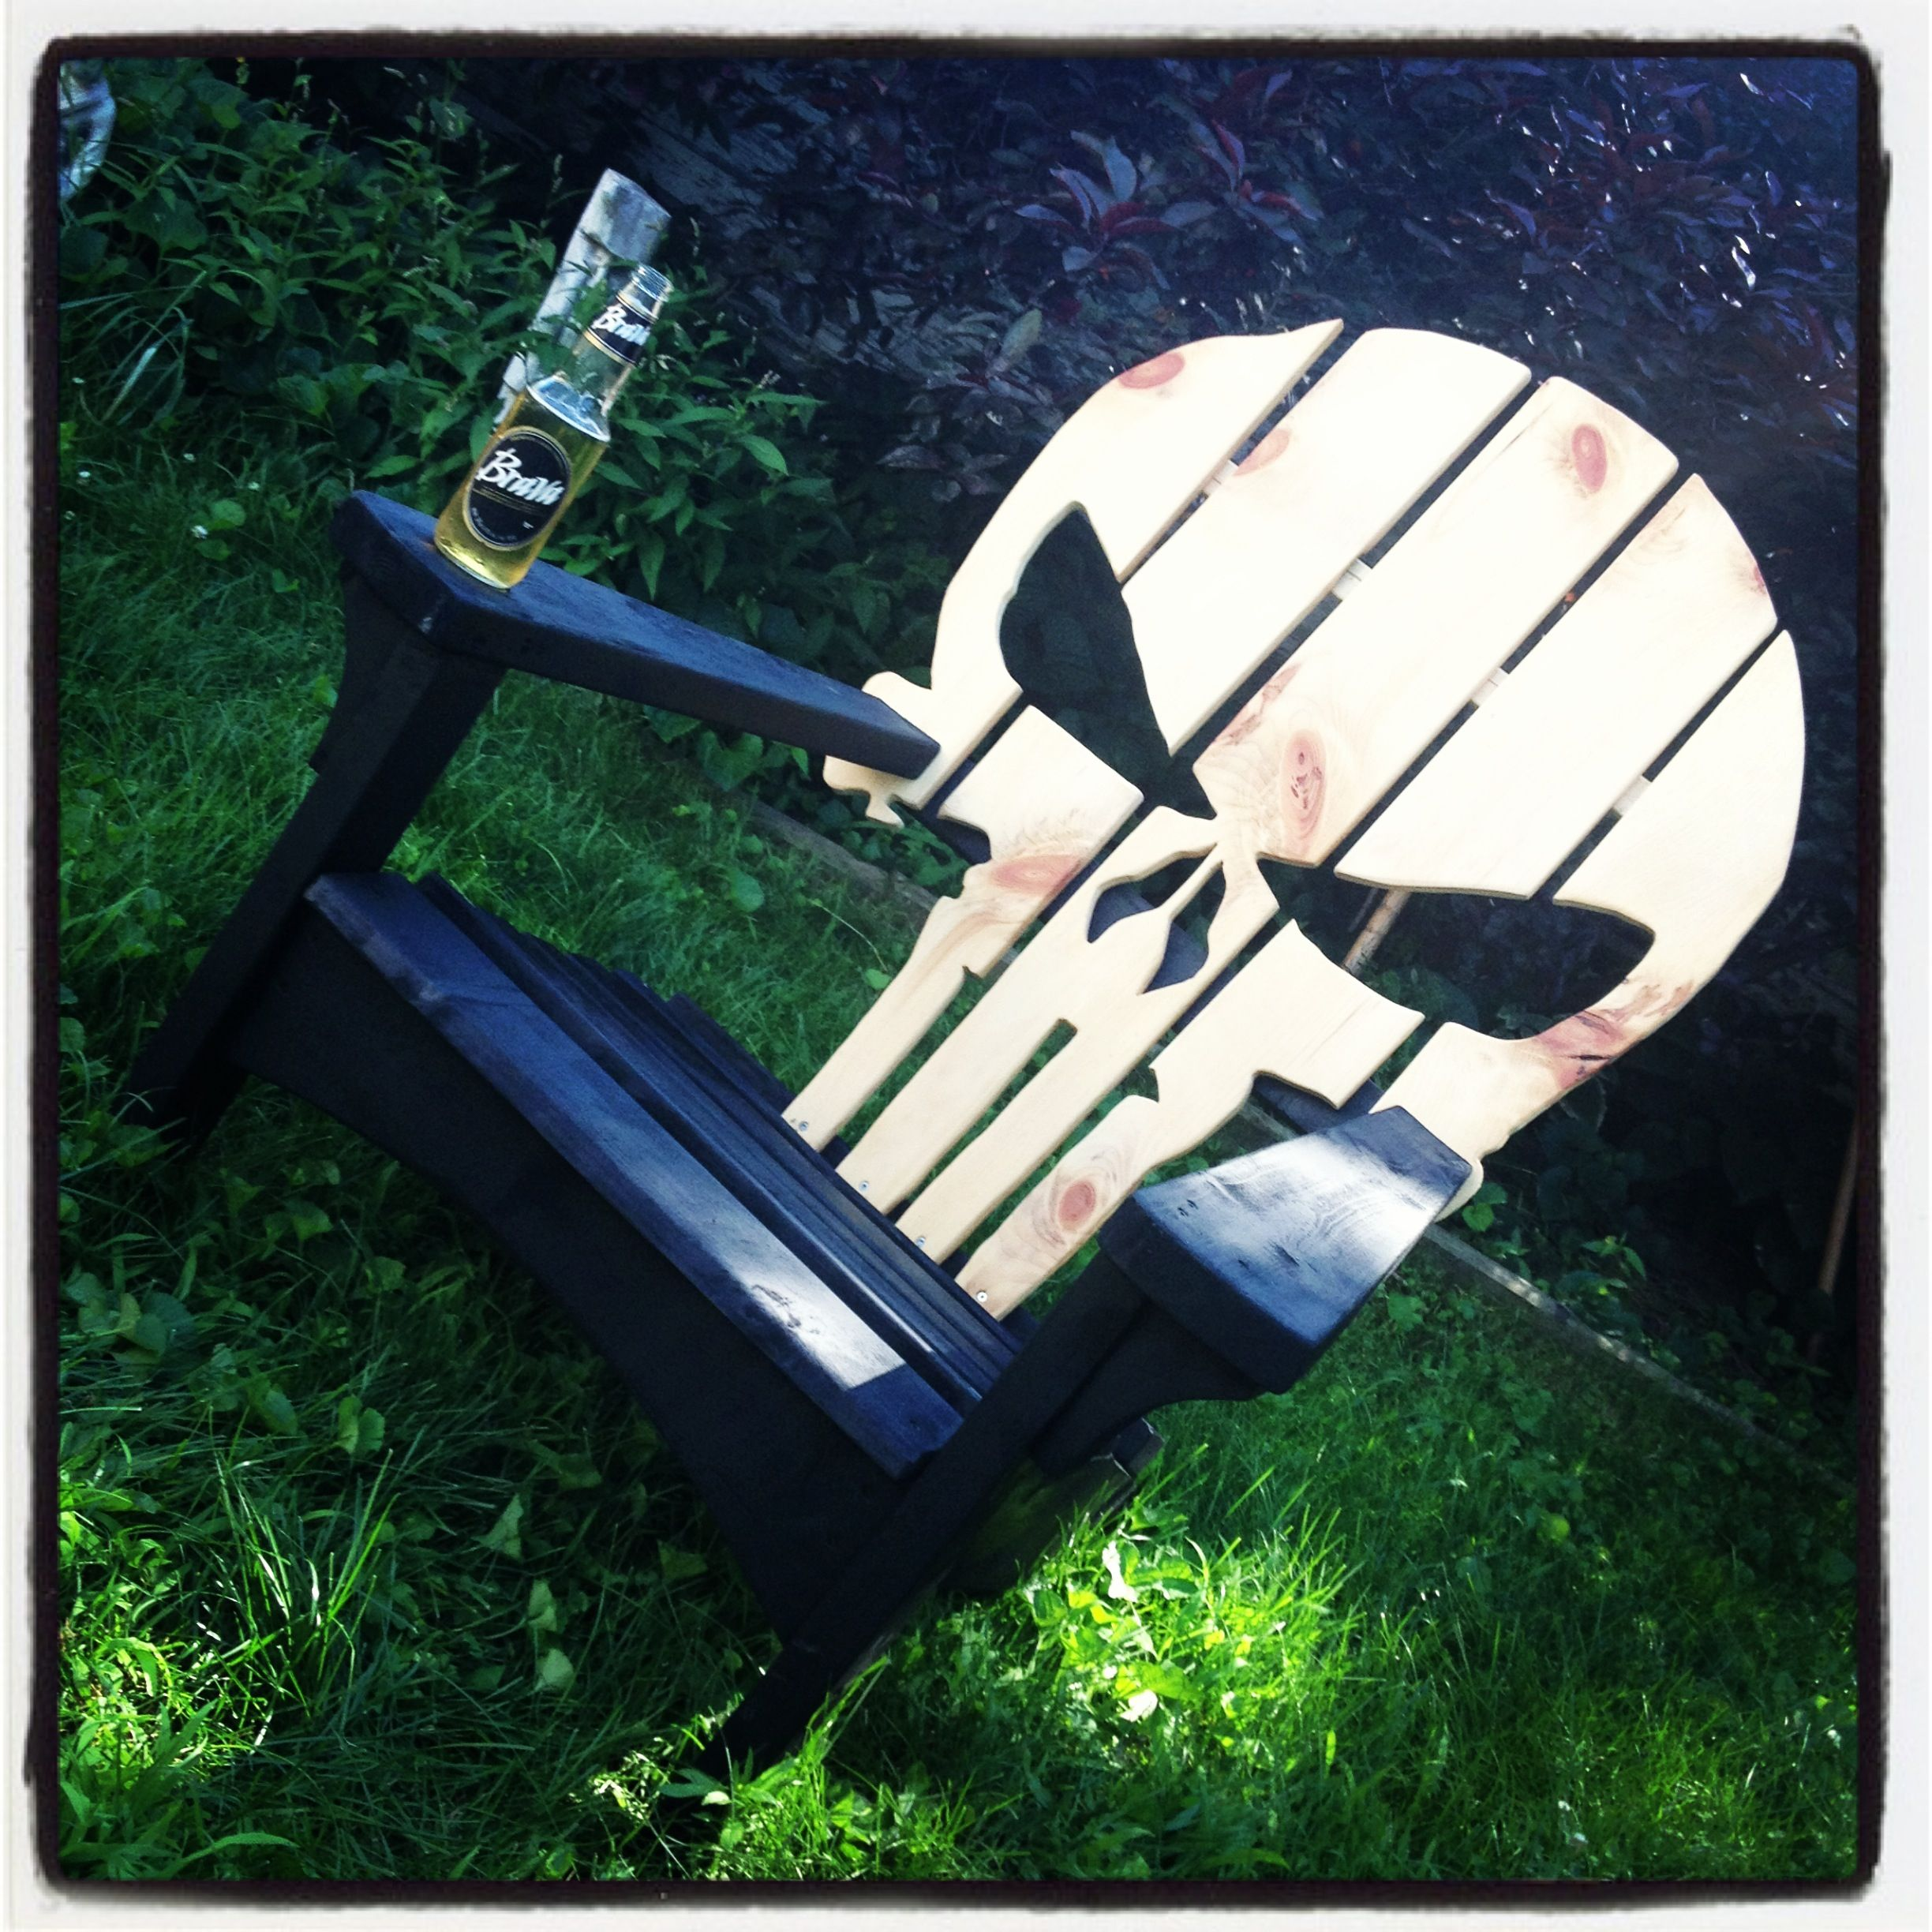 wooden skull chair rentals san jose punisher adirondack chairs we have made